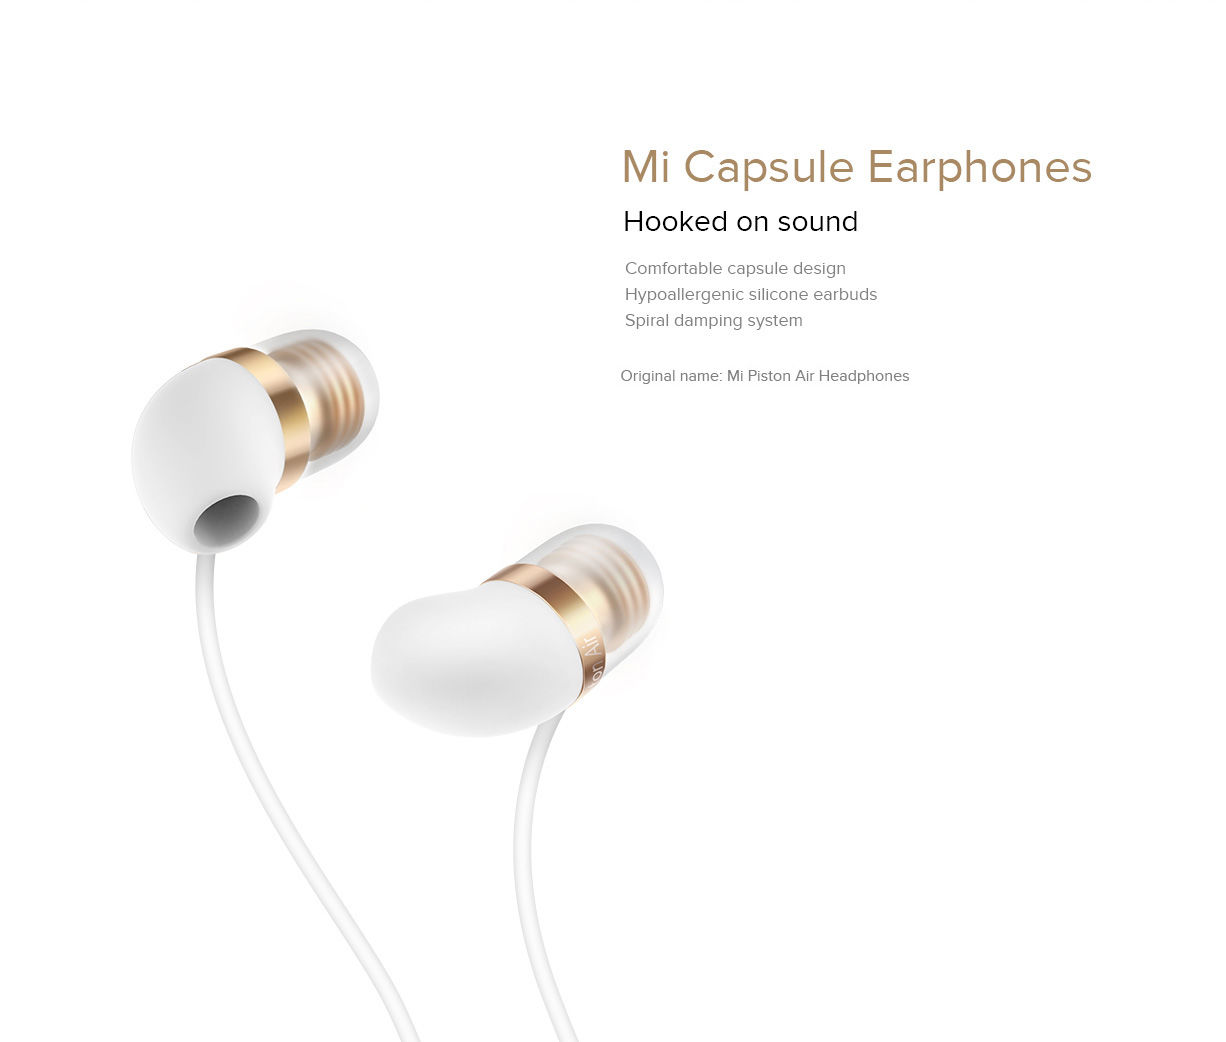 Αποτέλεσμα εικόνας για Handsfree Xiaomi Piston Capsule in ear White/Gold